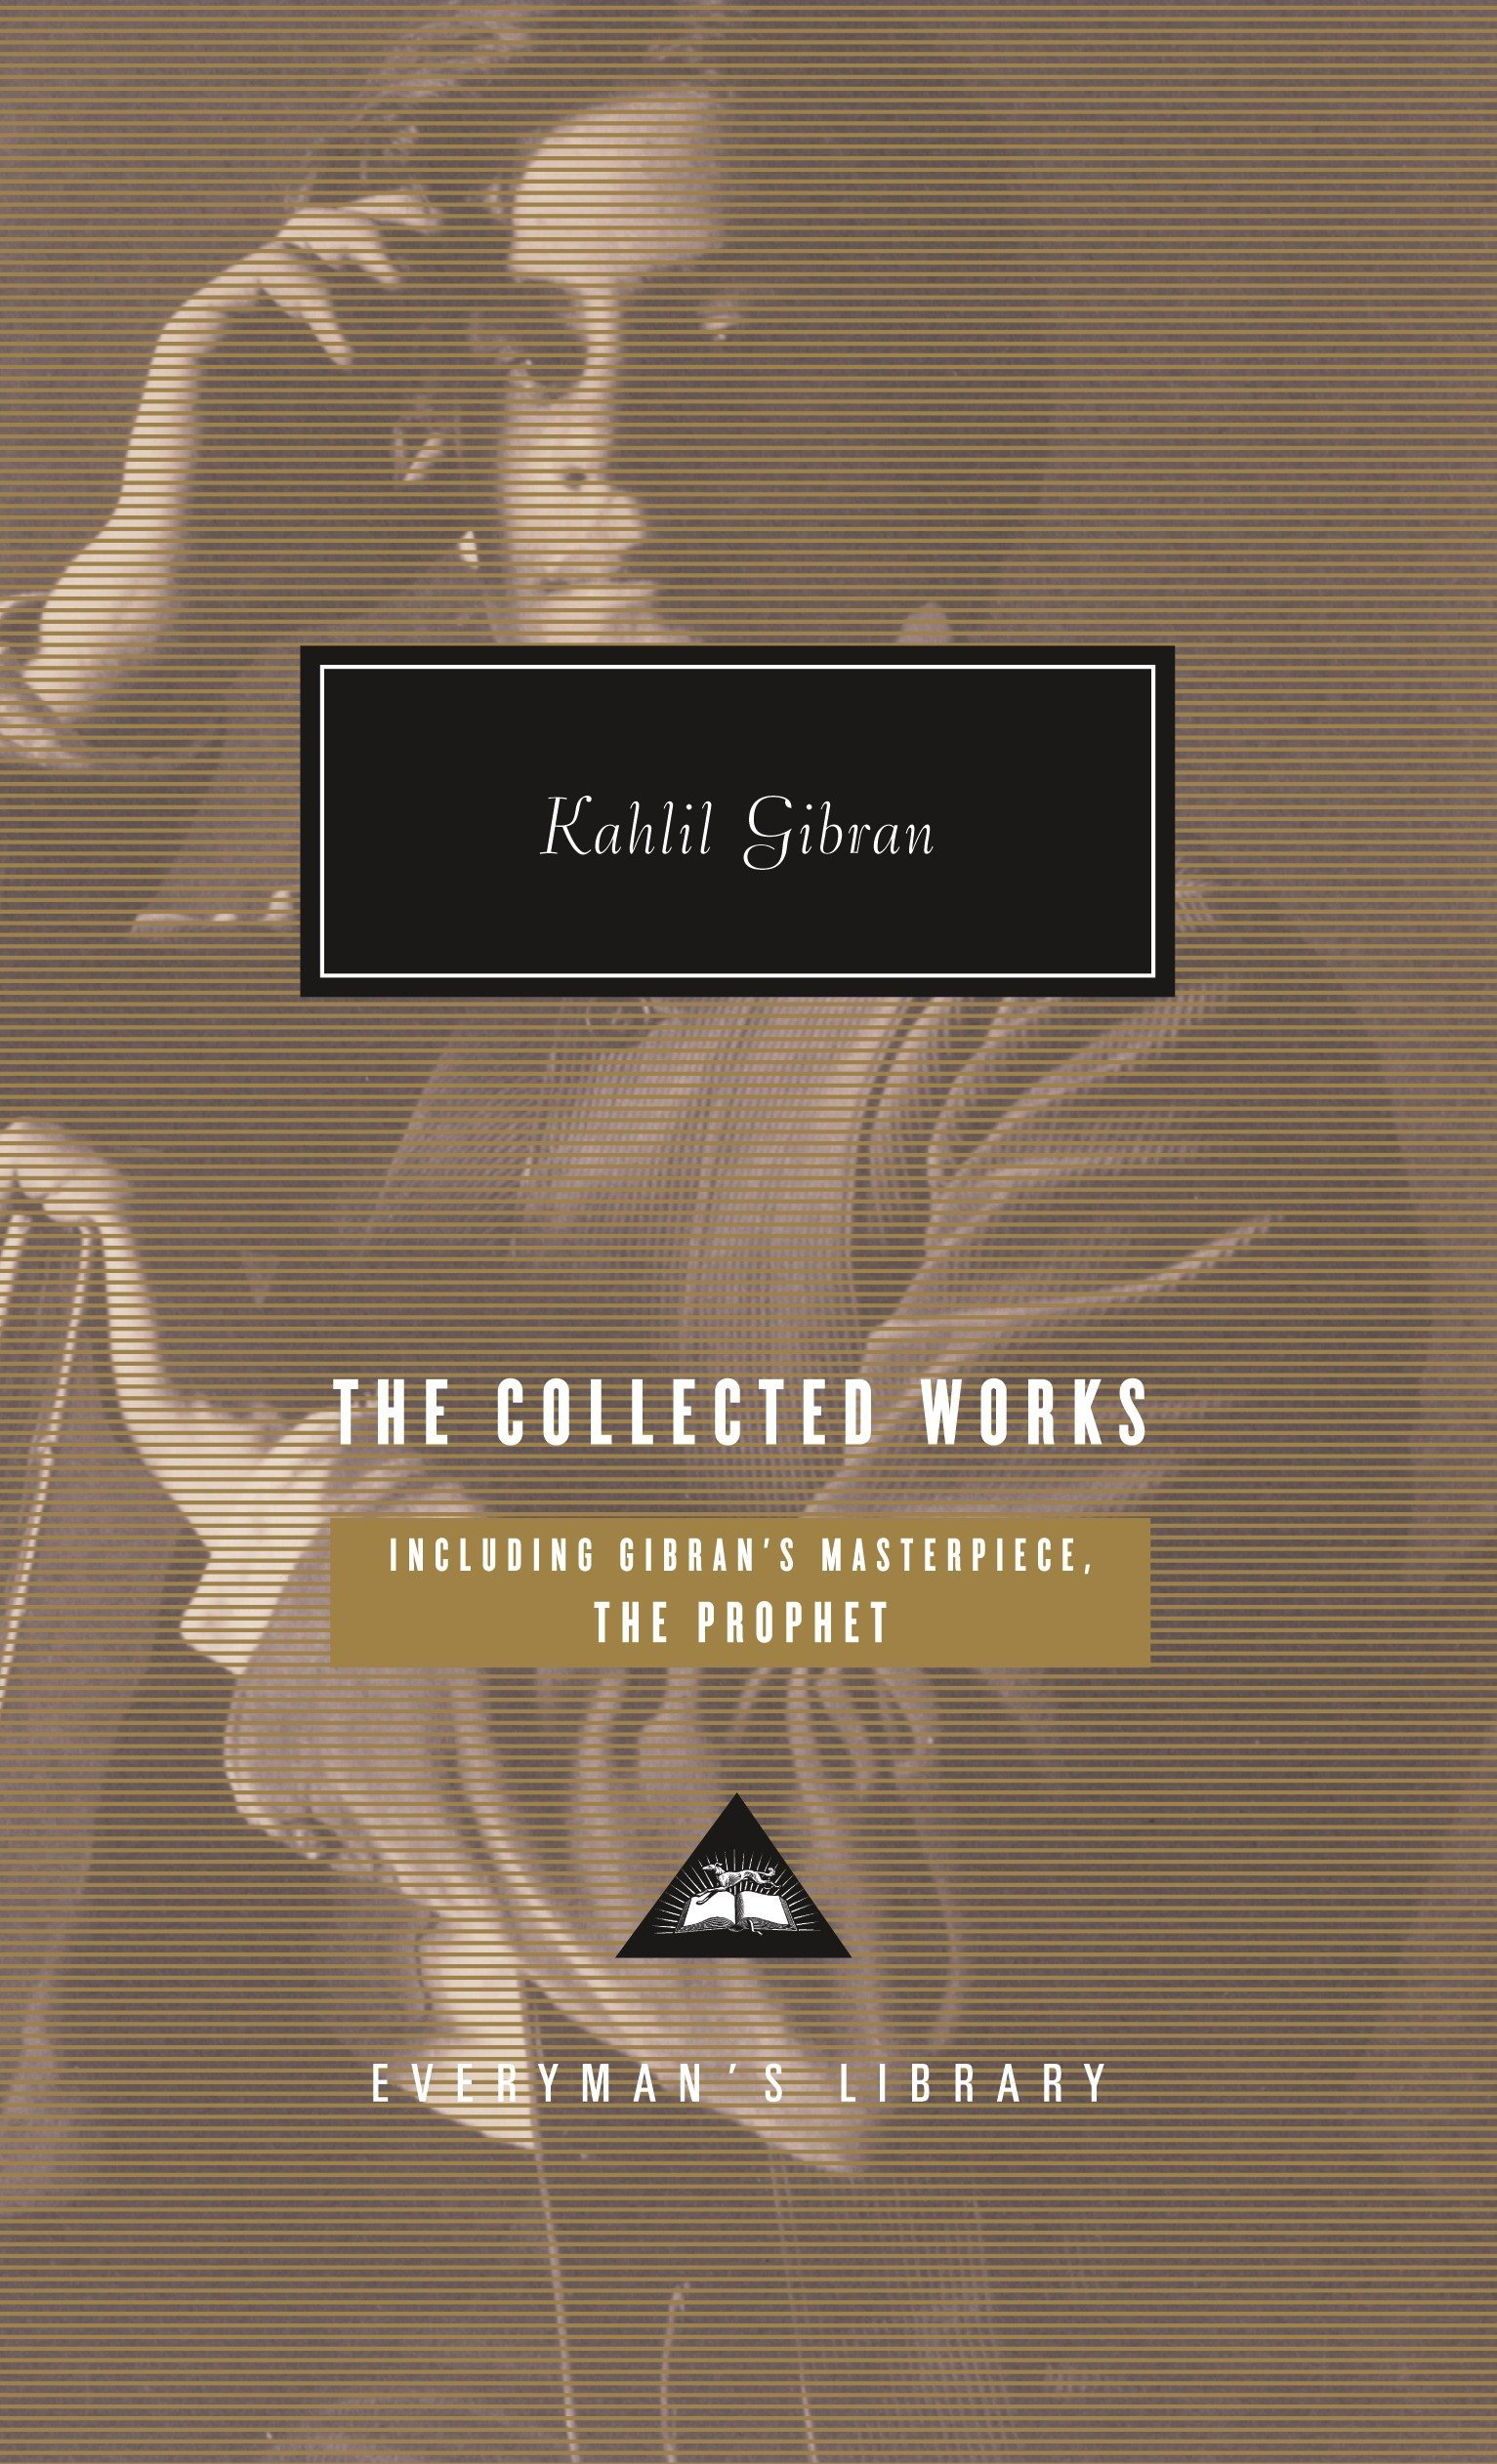 Kahlil Gibran, The Collected Works